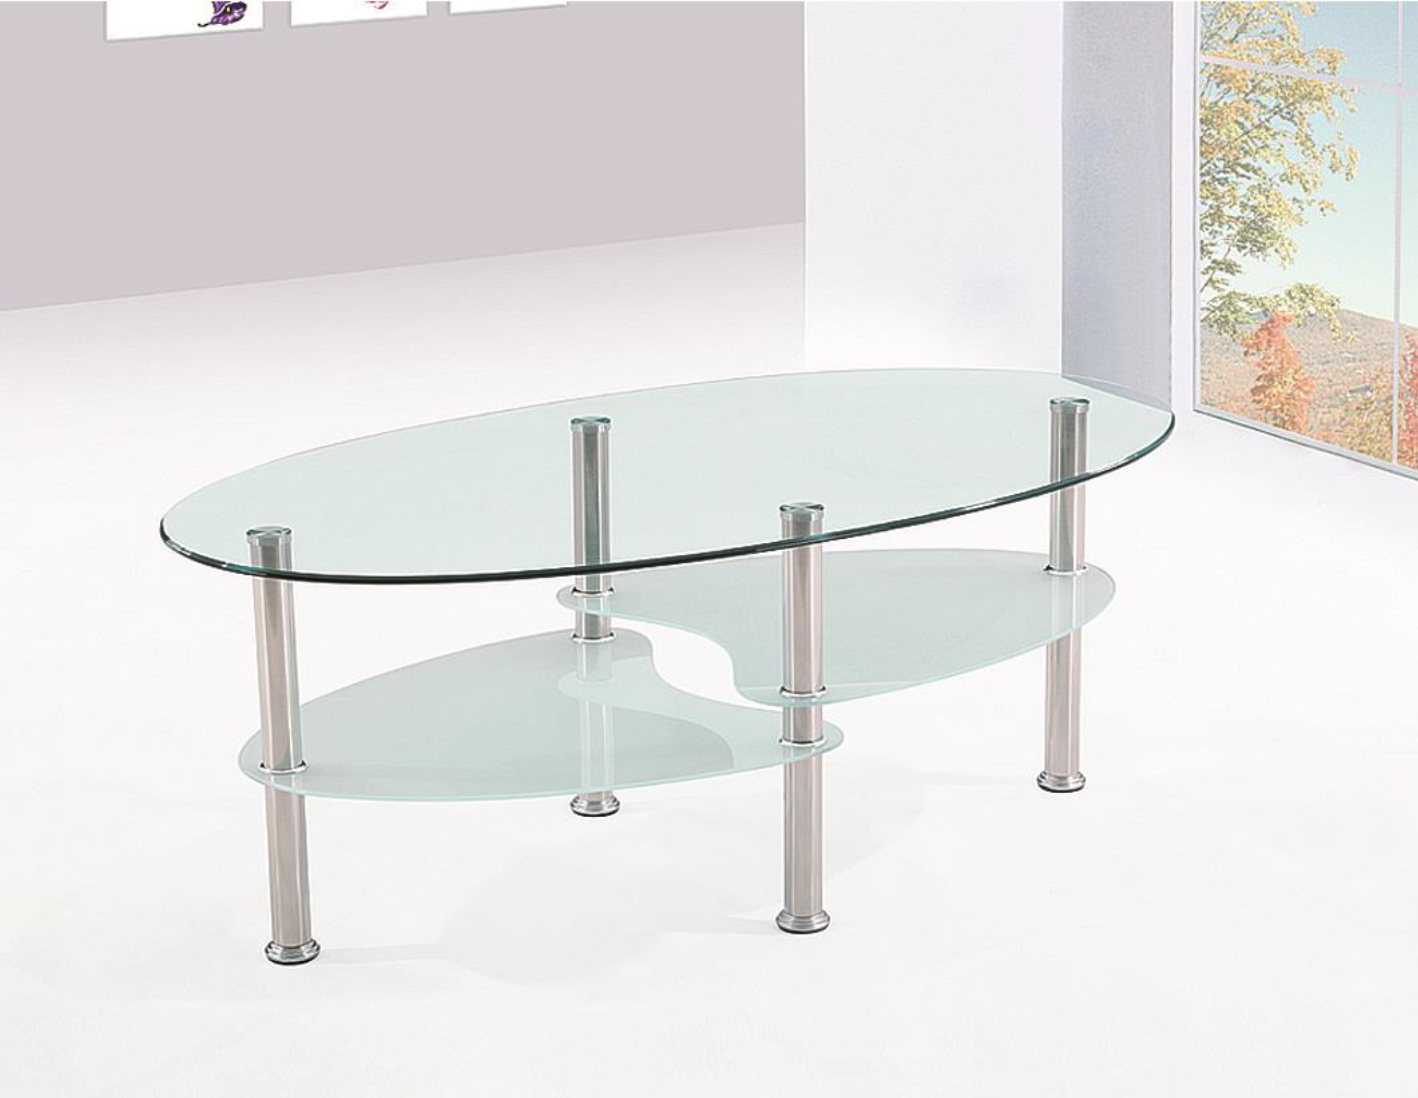 Table basse 3 plateaux a63t electro discount - Table basse discount ...